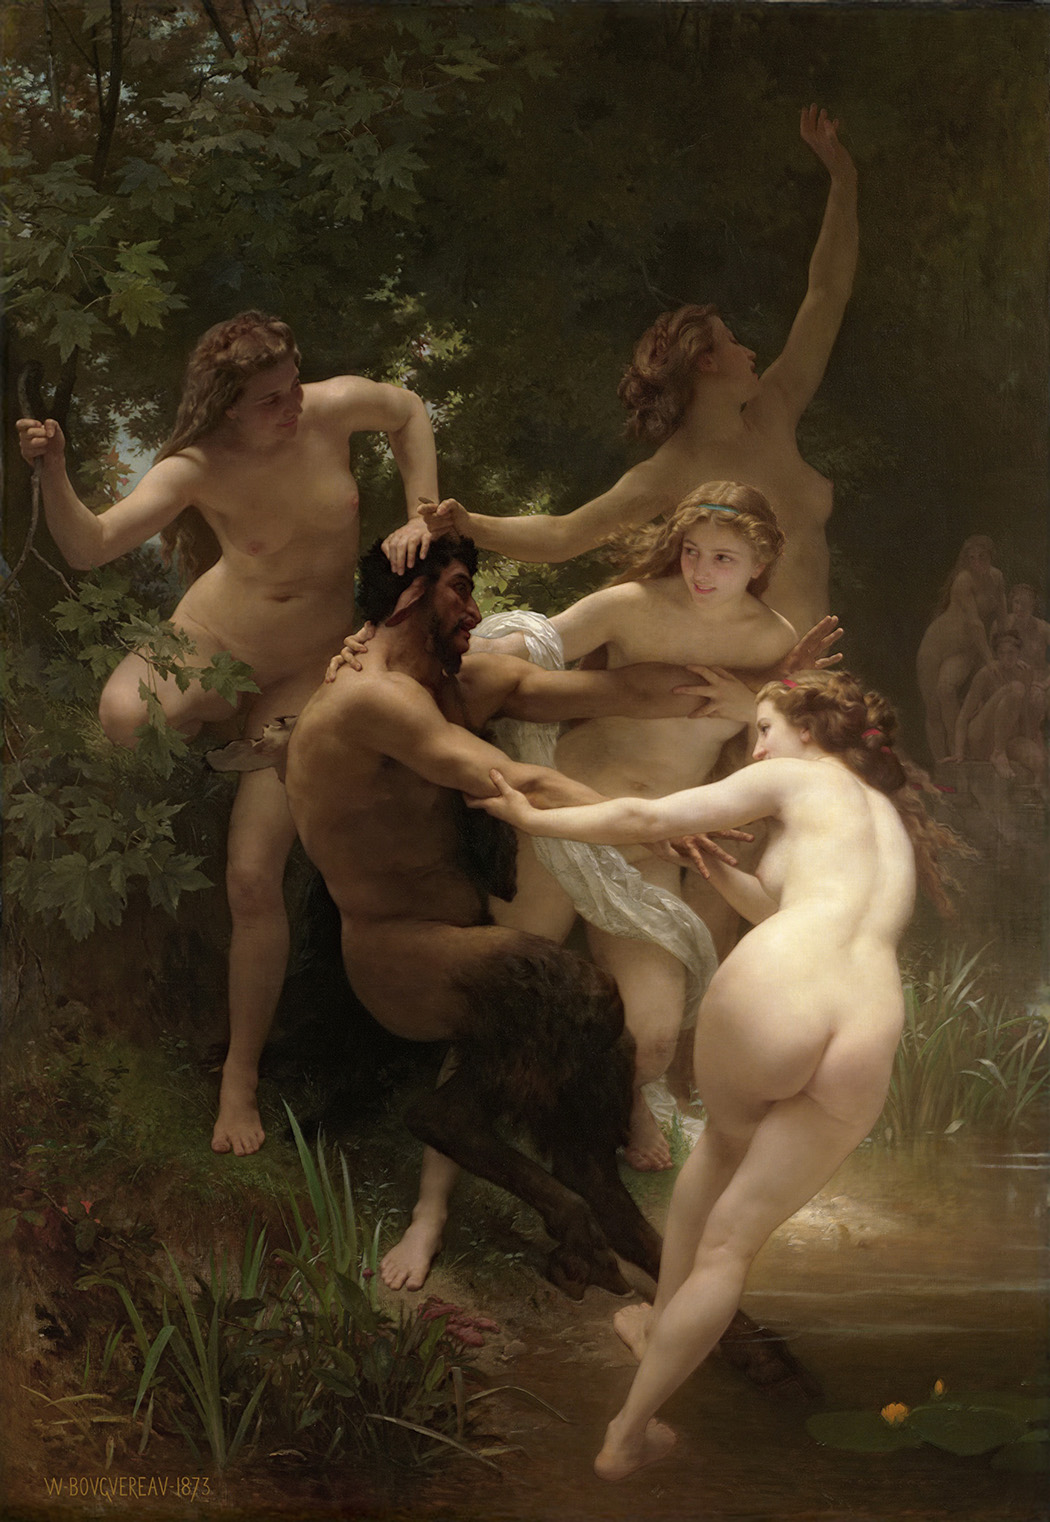 Nymphs and Satyr by William-Adolphe Bouguereau, 1873